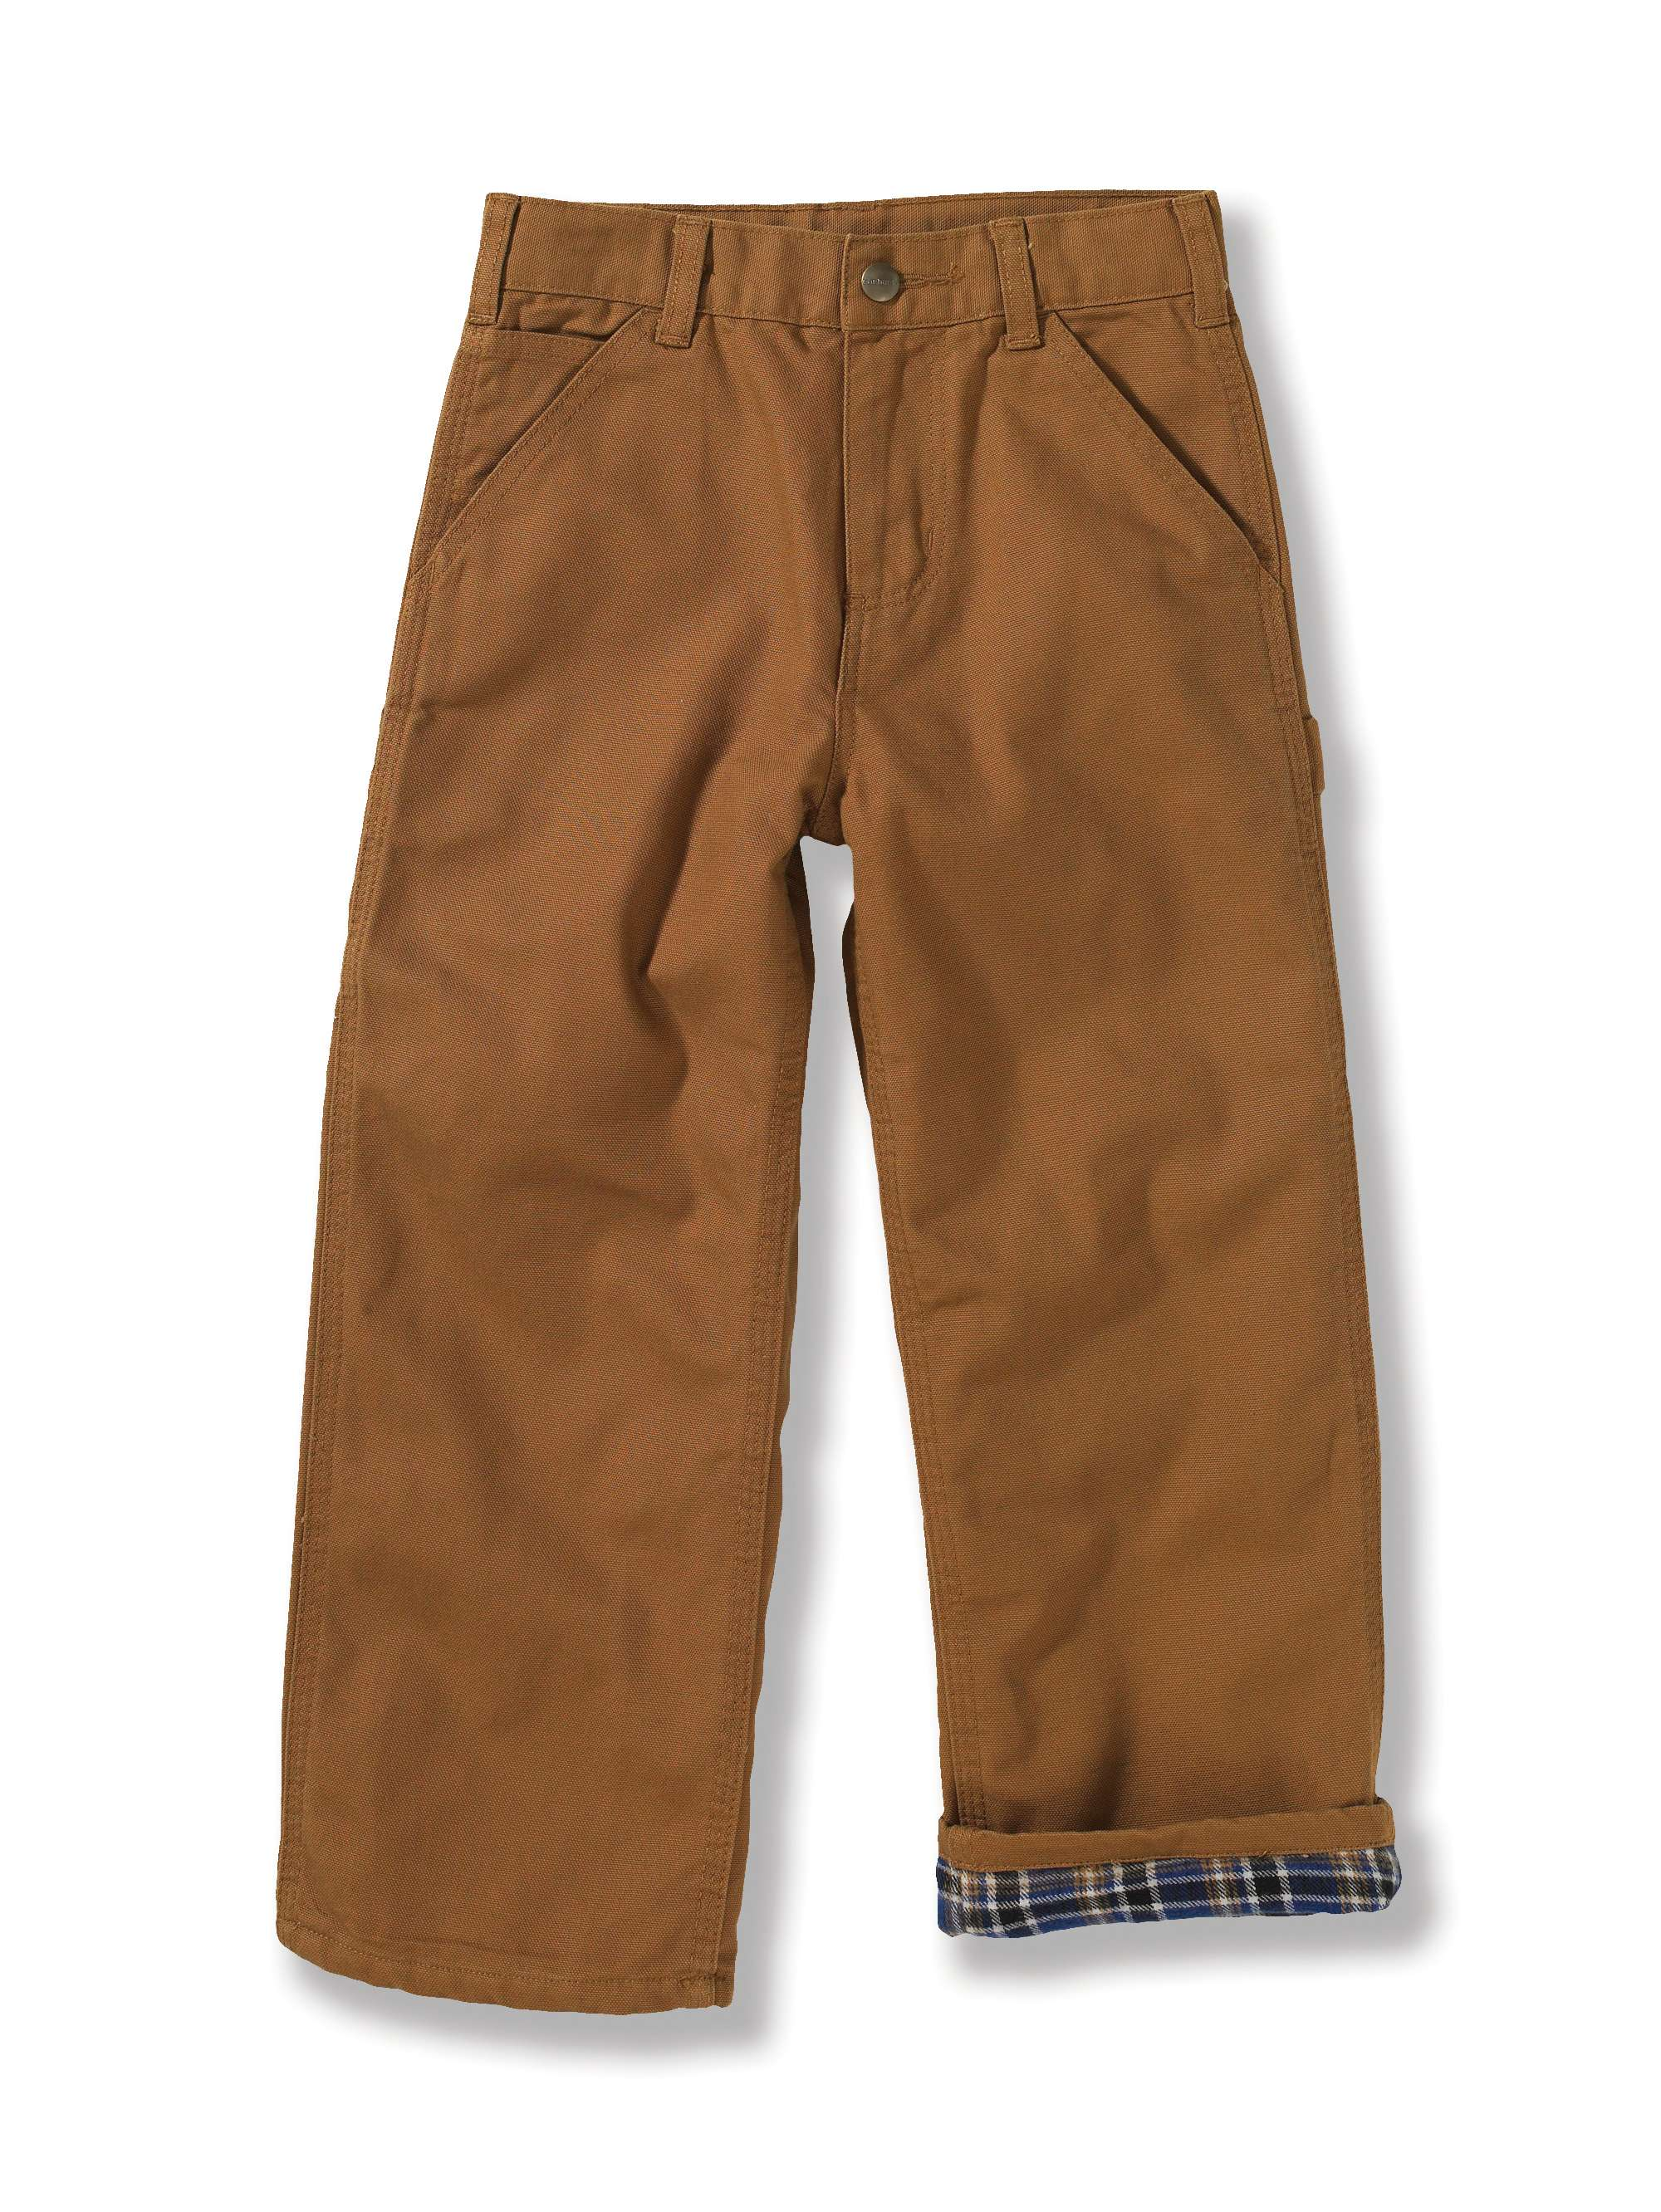 Carhartt Flannel Lined Dungaree Pant